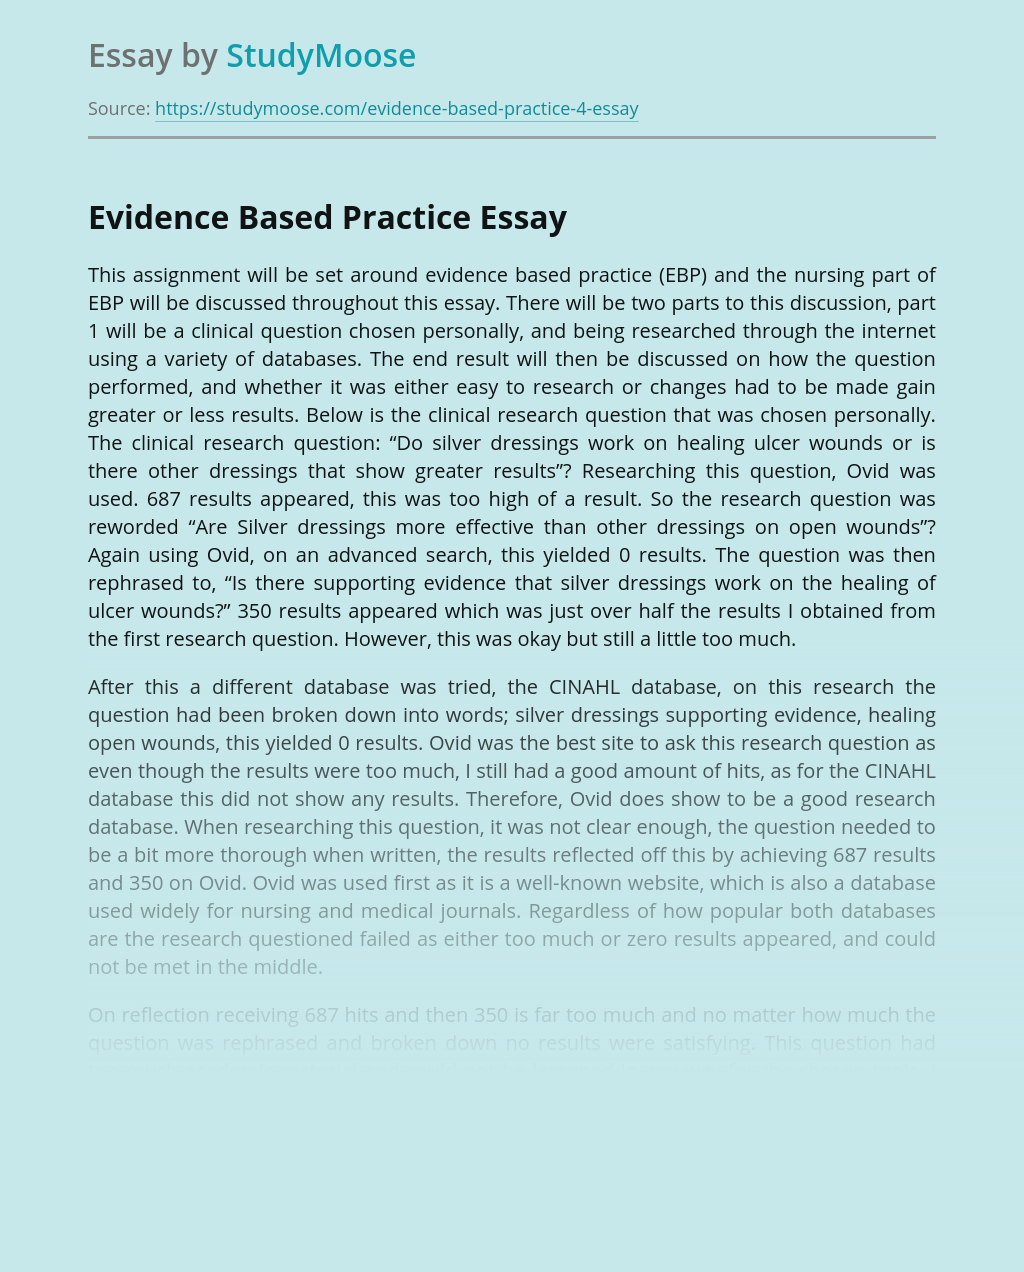 Evidence Based Practice in World